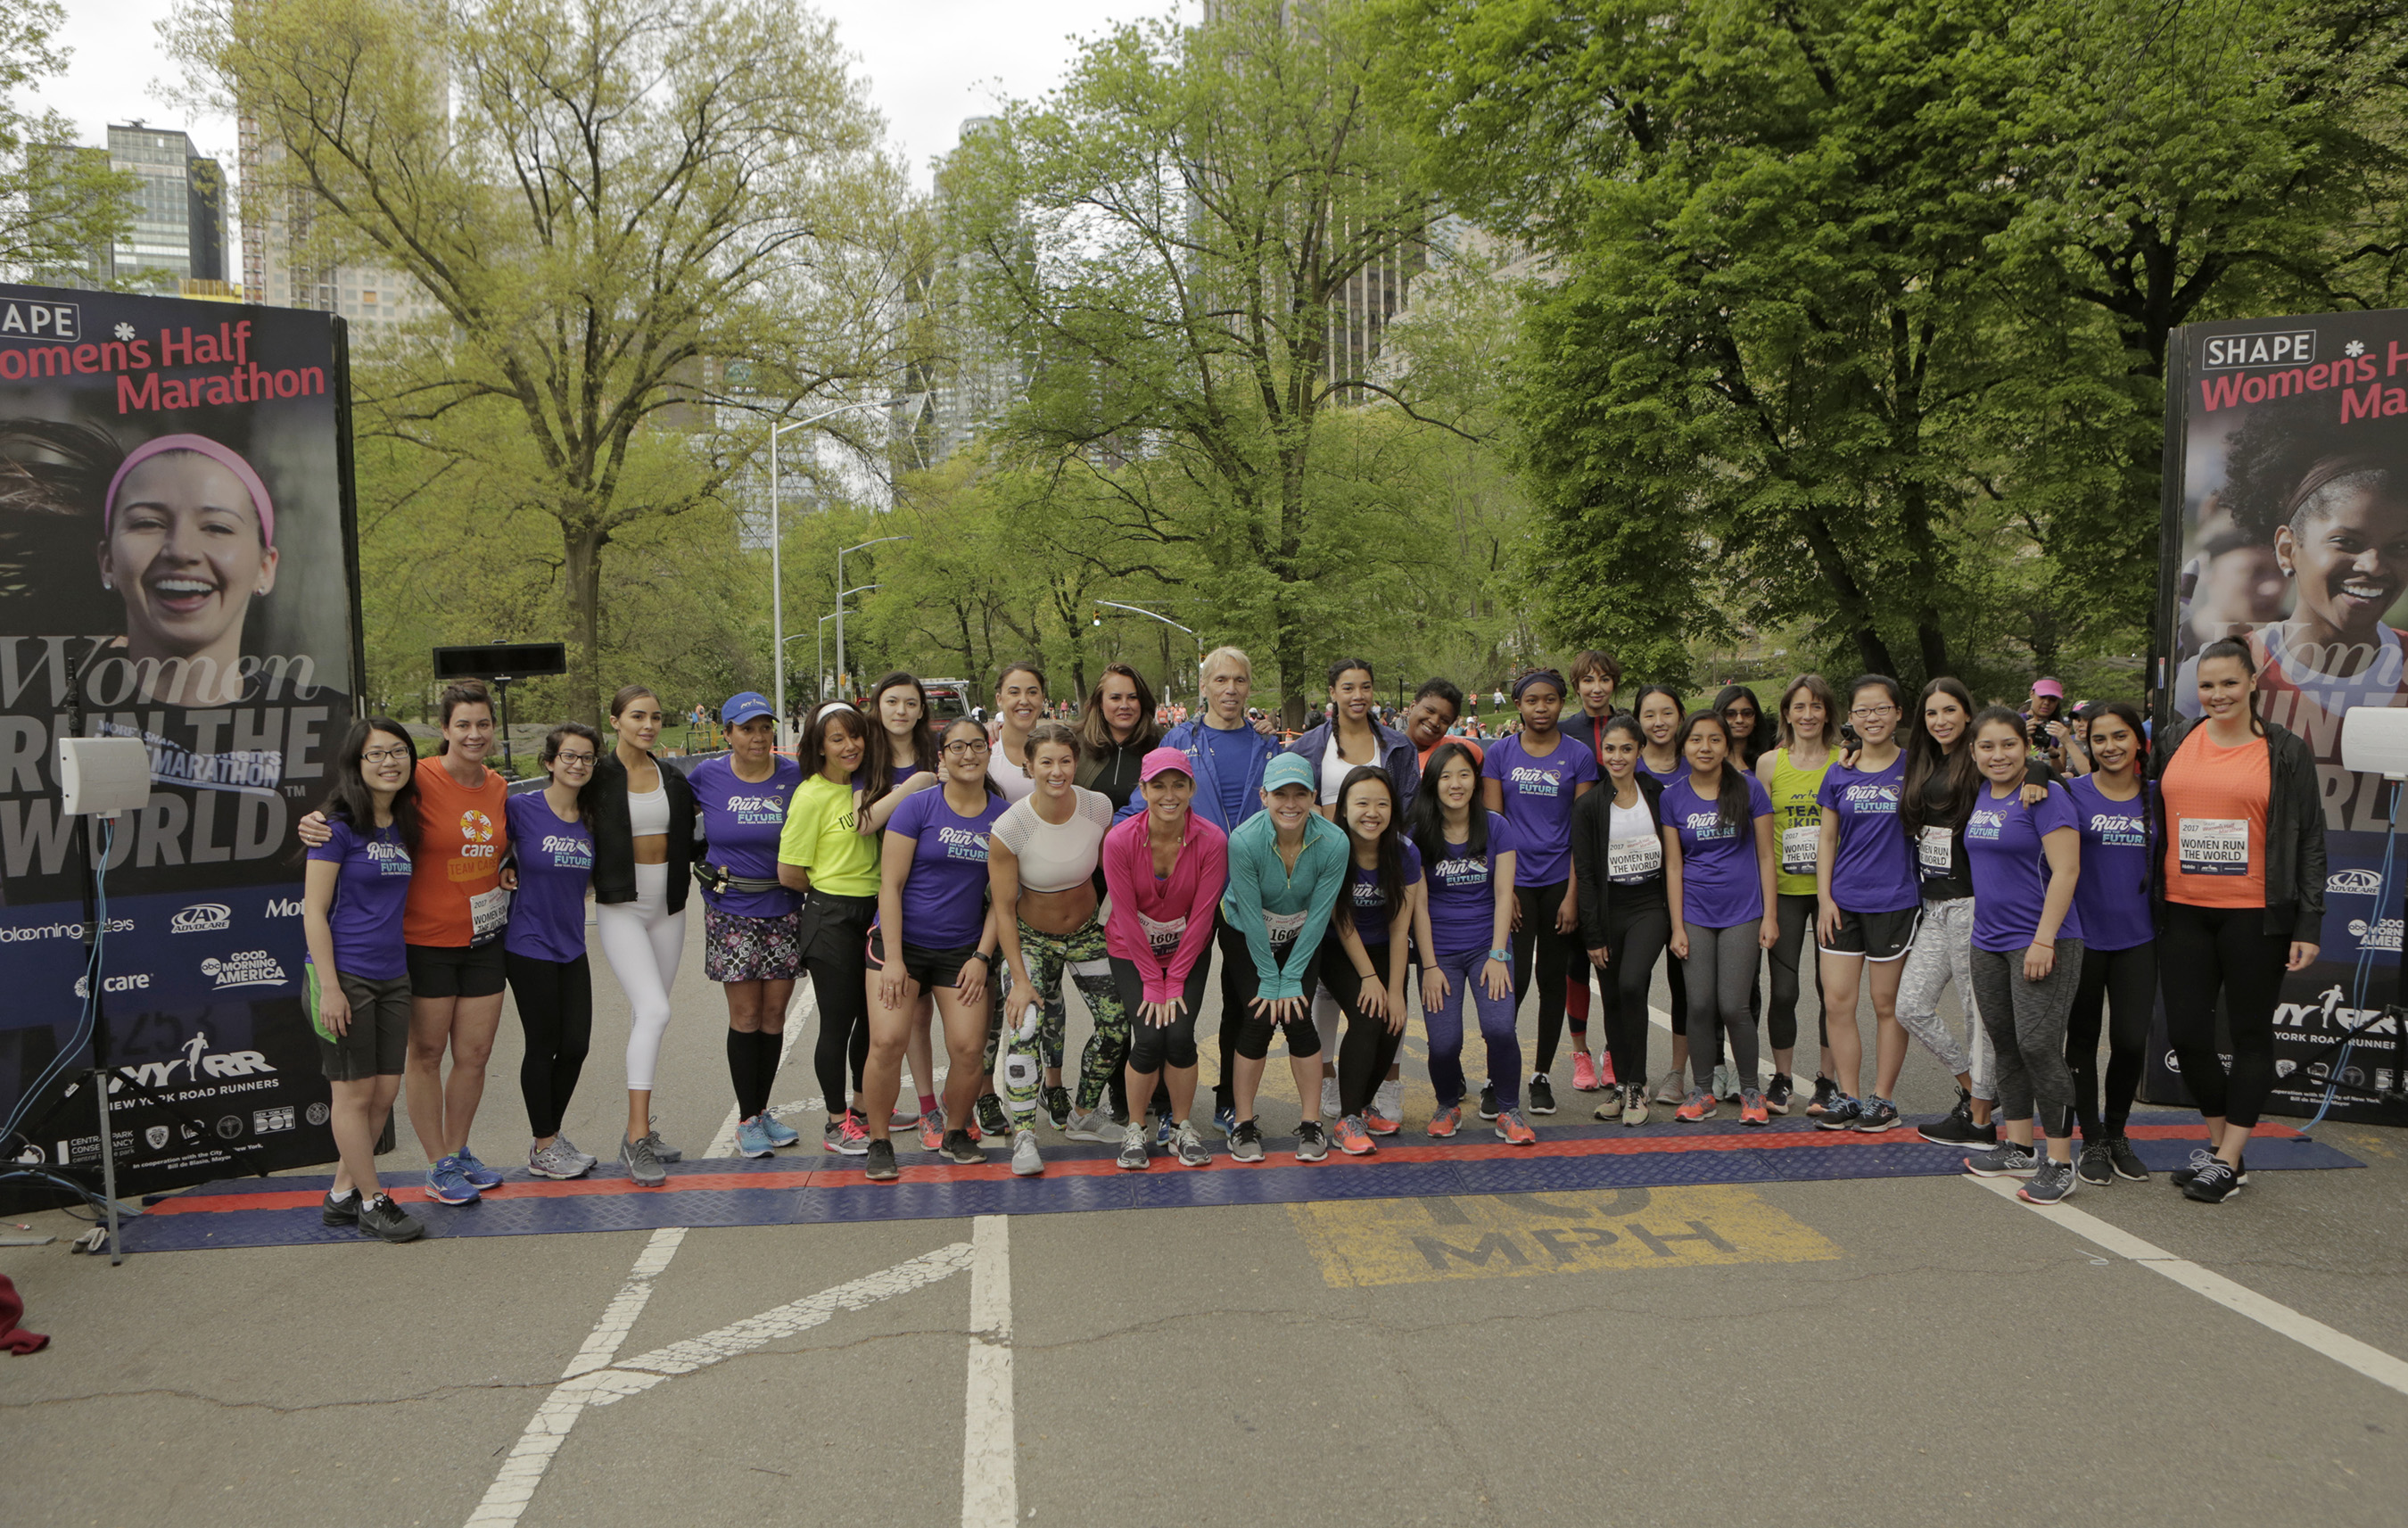 Women Run the World honorees and mentees at the start line of the 14th annual SHAPE Women's Half Marathon on Sunday, April 30 in Central Park.